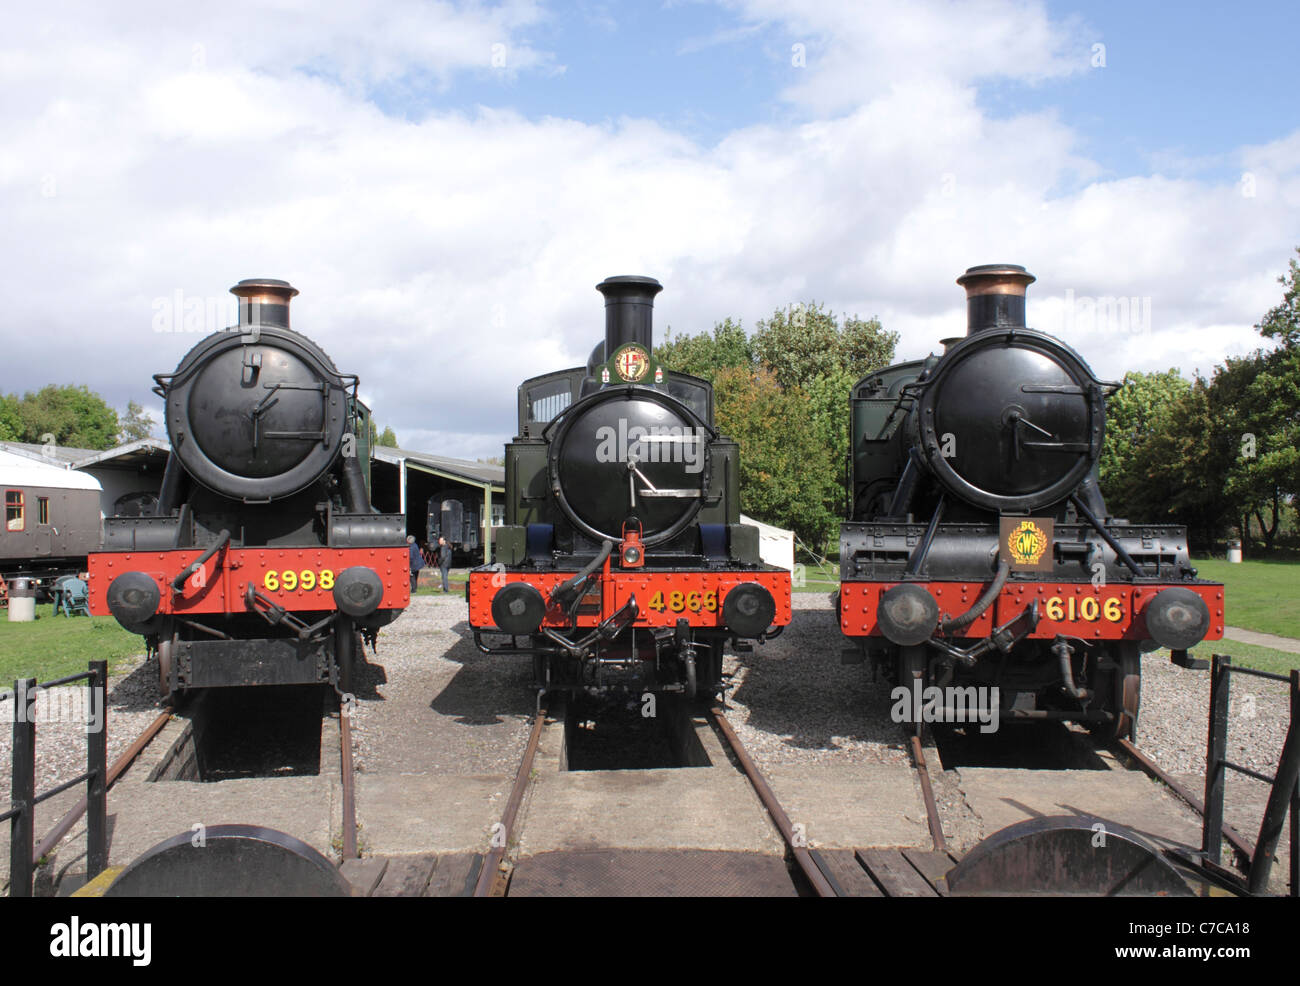 Steam locomotives at Didcot Railway Centre September 2011 - Stock Image